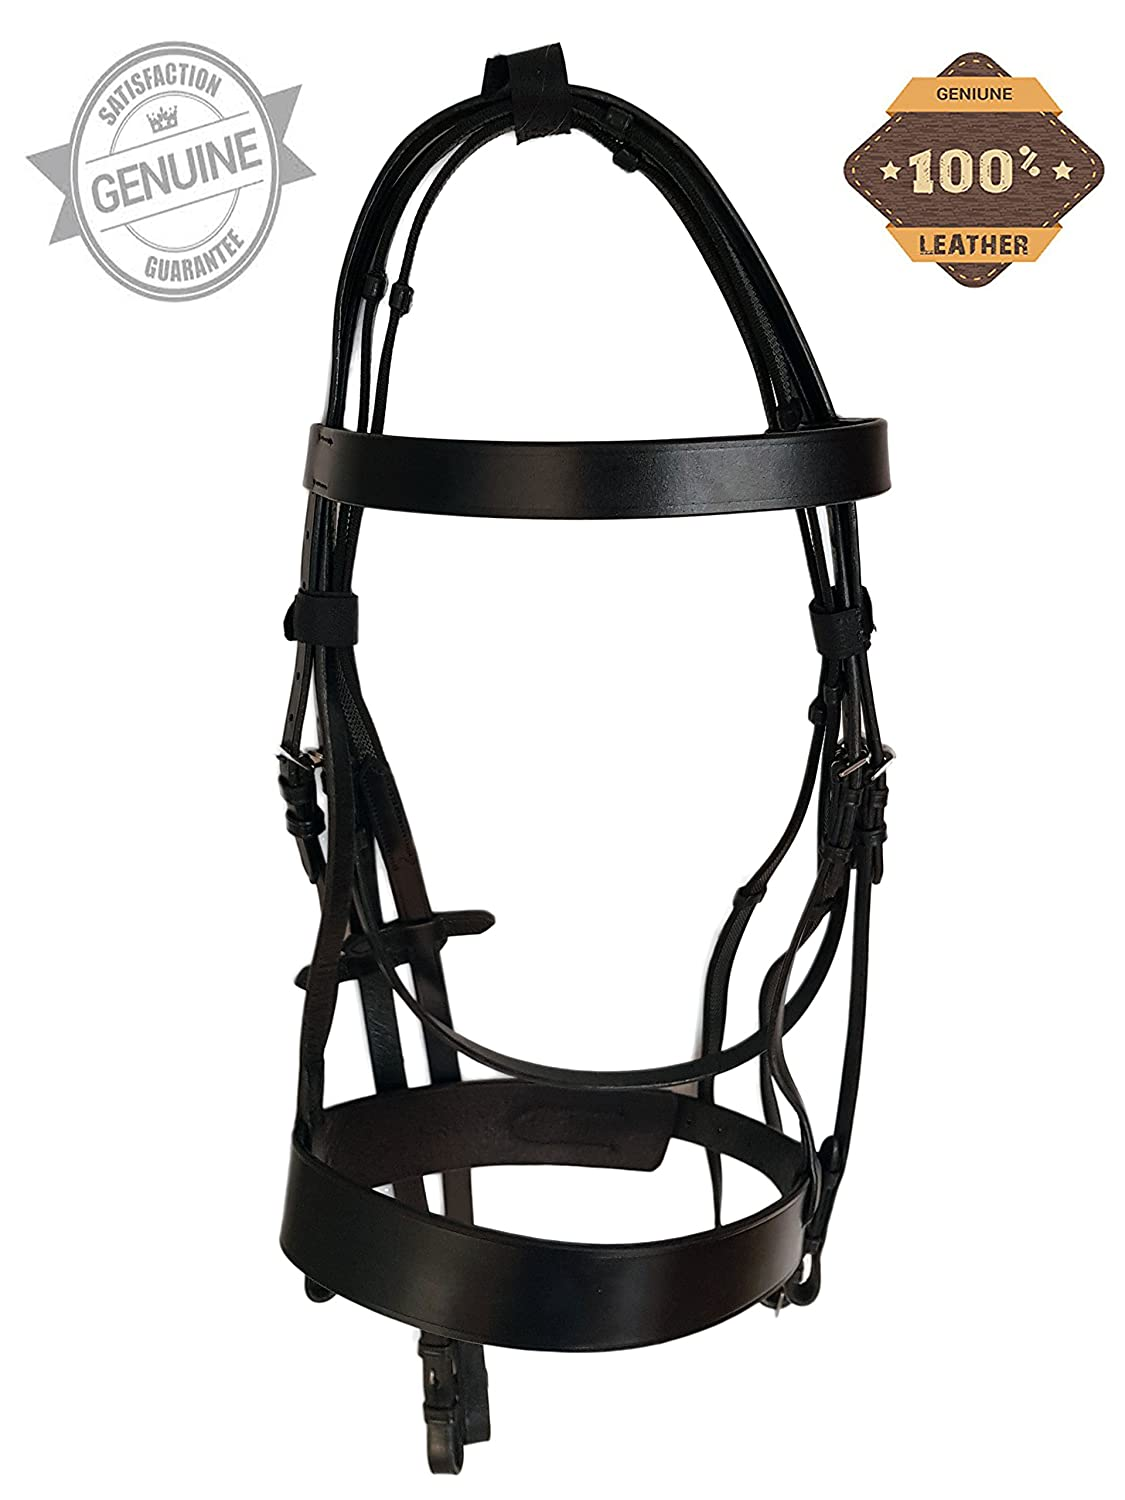 FULL Pets2Care PLAIN HUNTER BRIDLE BROWN WITH 2 NOSEBAND /& 1 BROWBAND PREMIUM QUALITY